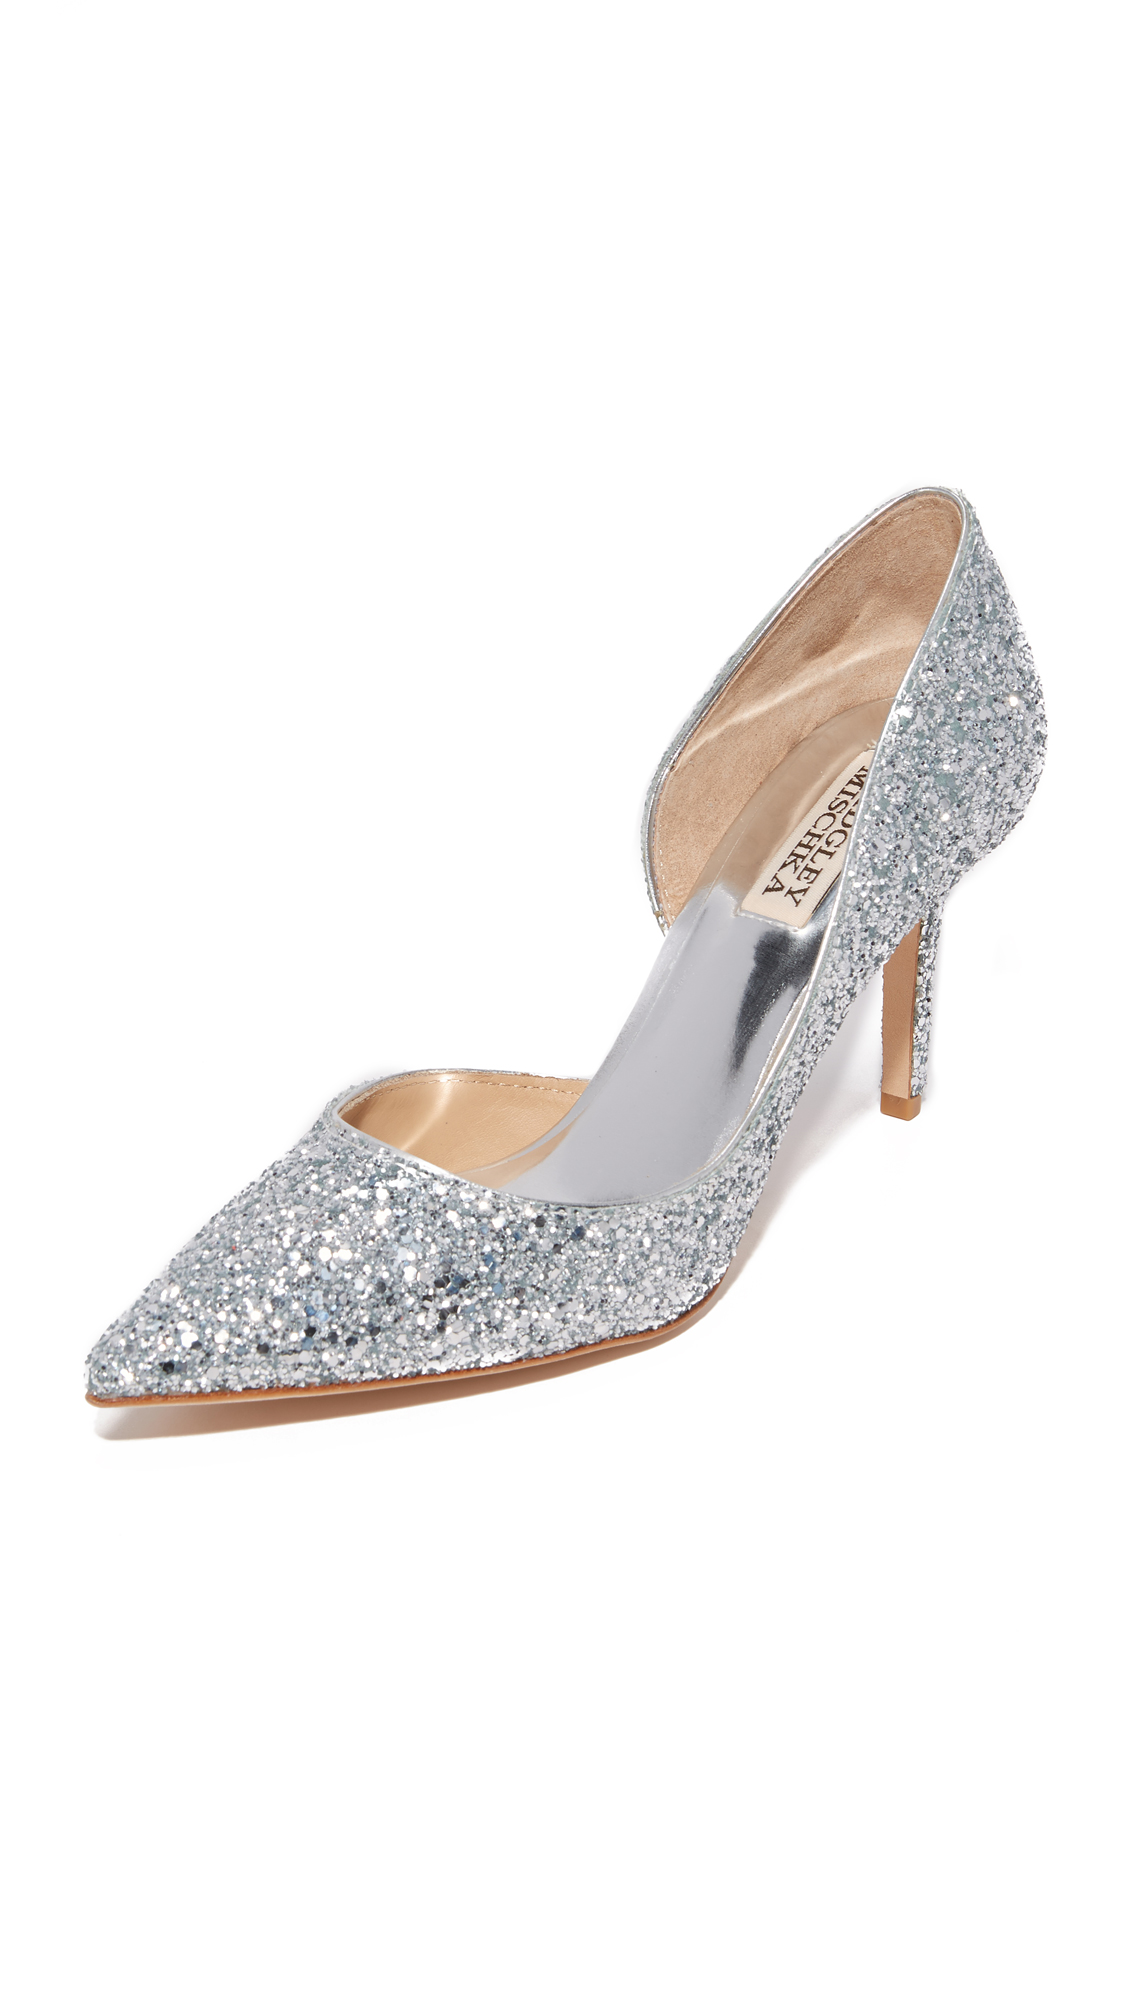 Photo of Badgley Mischka Daisy Glitter Pumps Silver - Badgley Mischka online